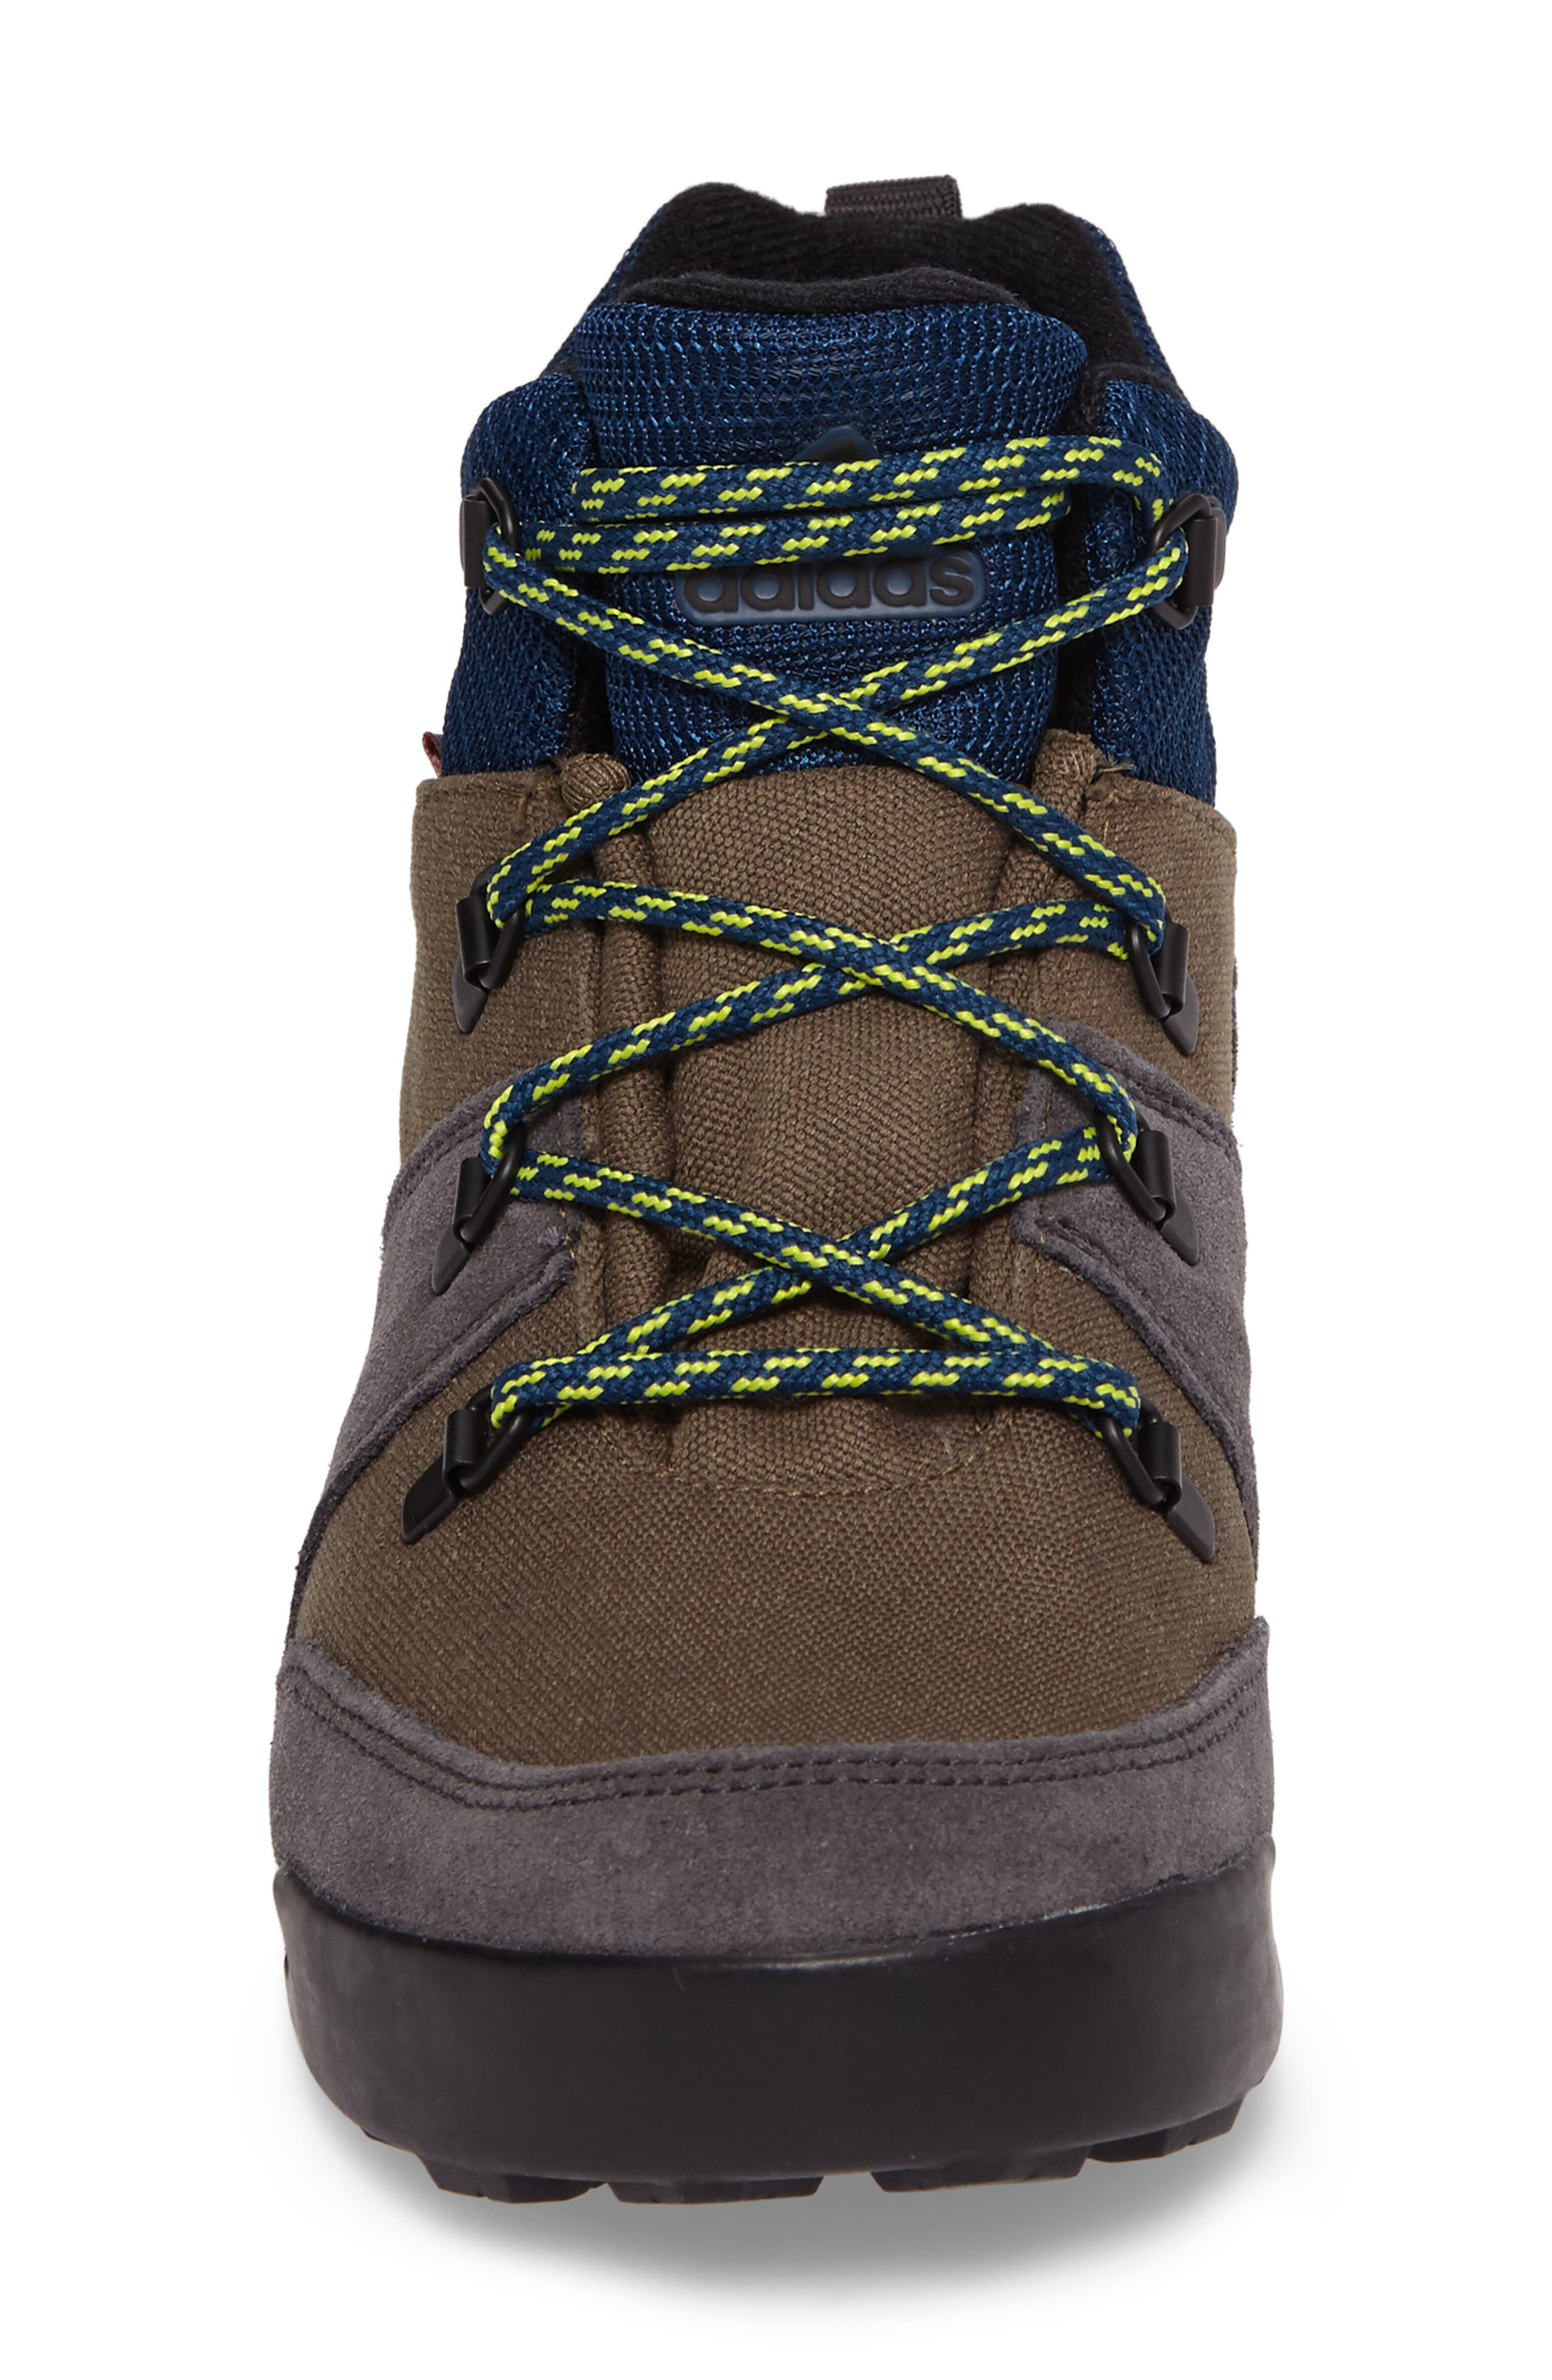 Snowpitch Insulated Sneaker Boot,                             Alternate thumbnail 4, color,                             Cargo/ Black/ Solar Yellow